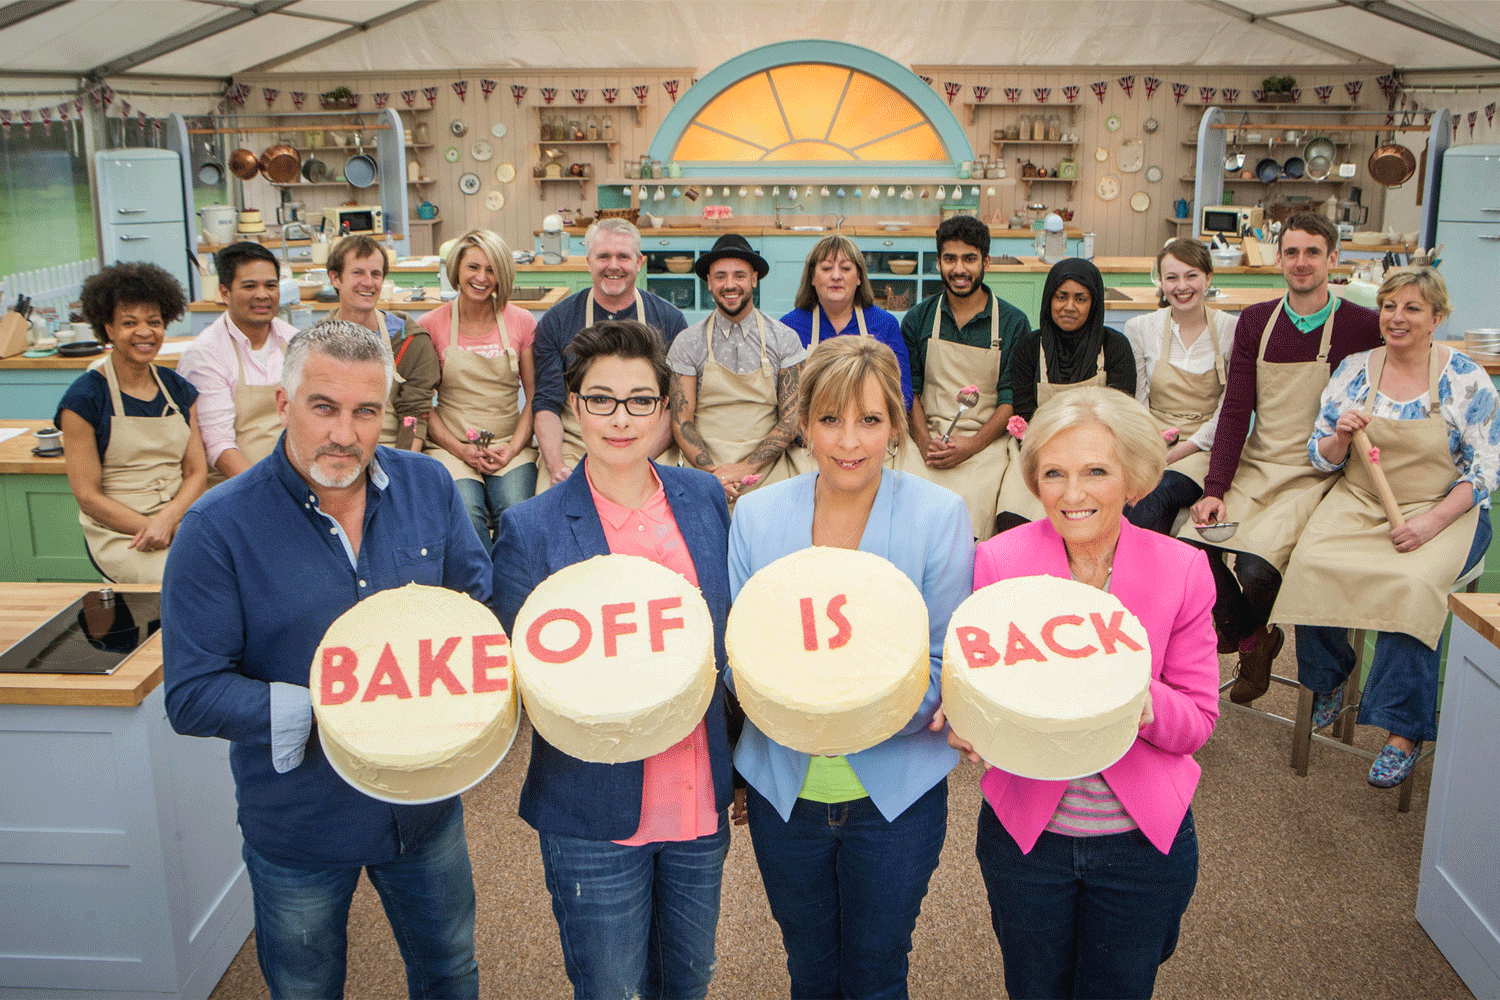 Two more days until Bake Off! Here's why we're looking forward to the new series...#GBBO http://t.co/XT6OC0FoQJ http://t.co/o2ScQik3bA